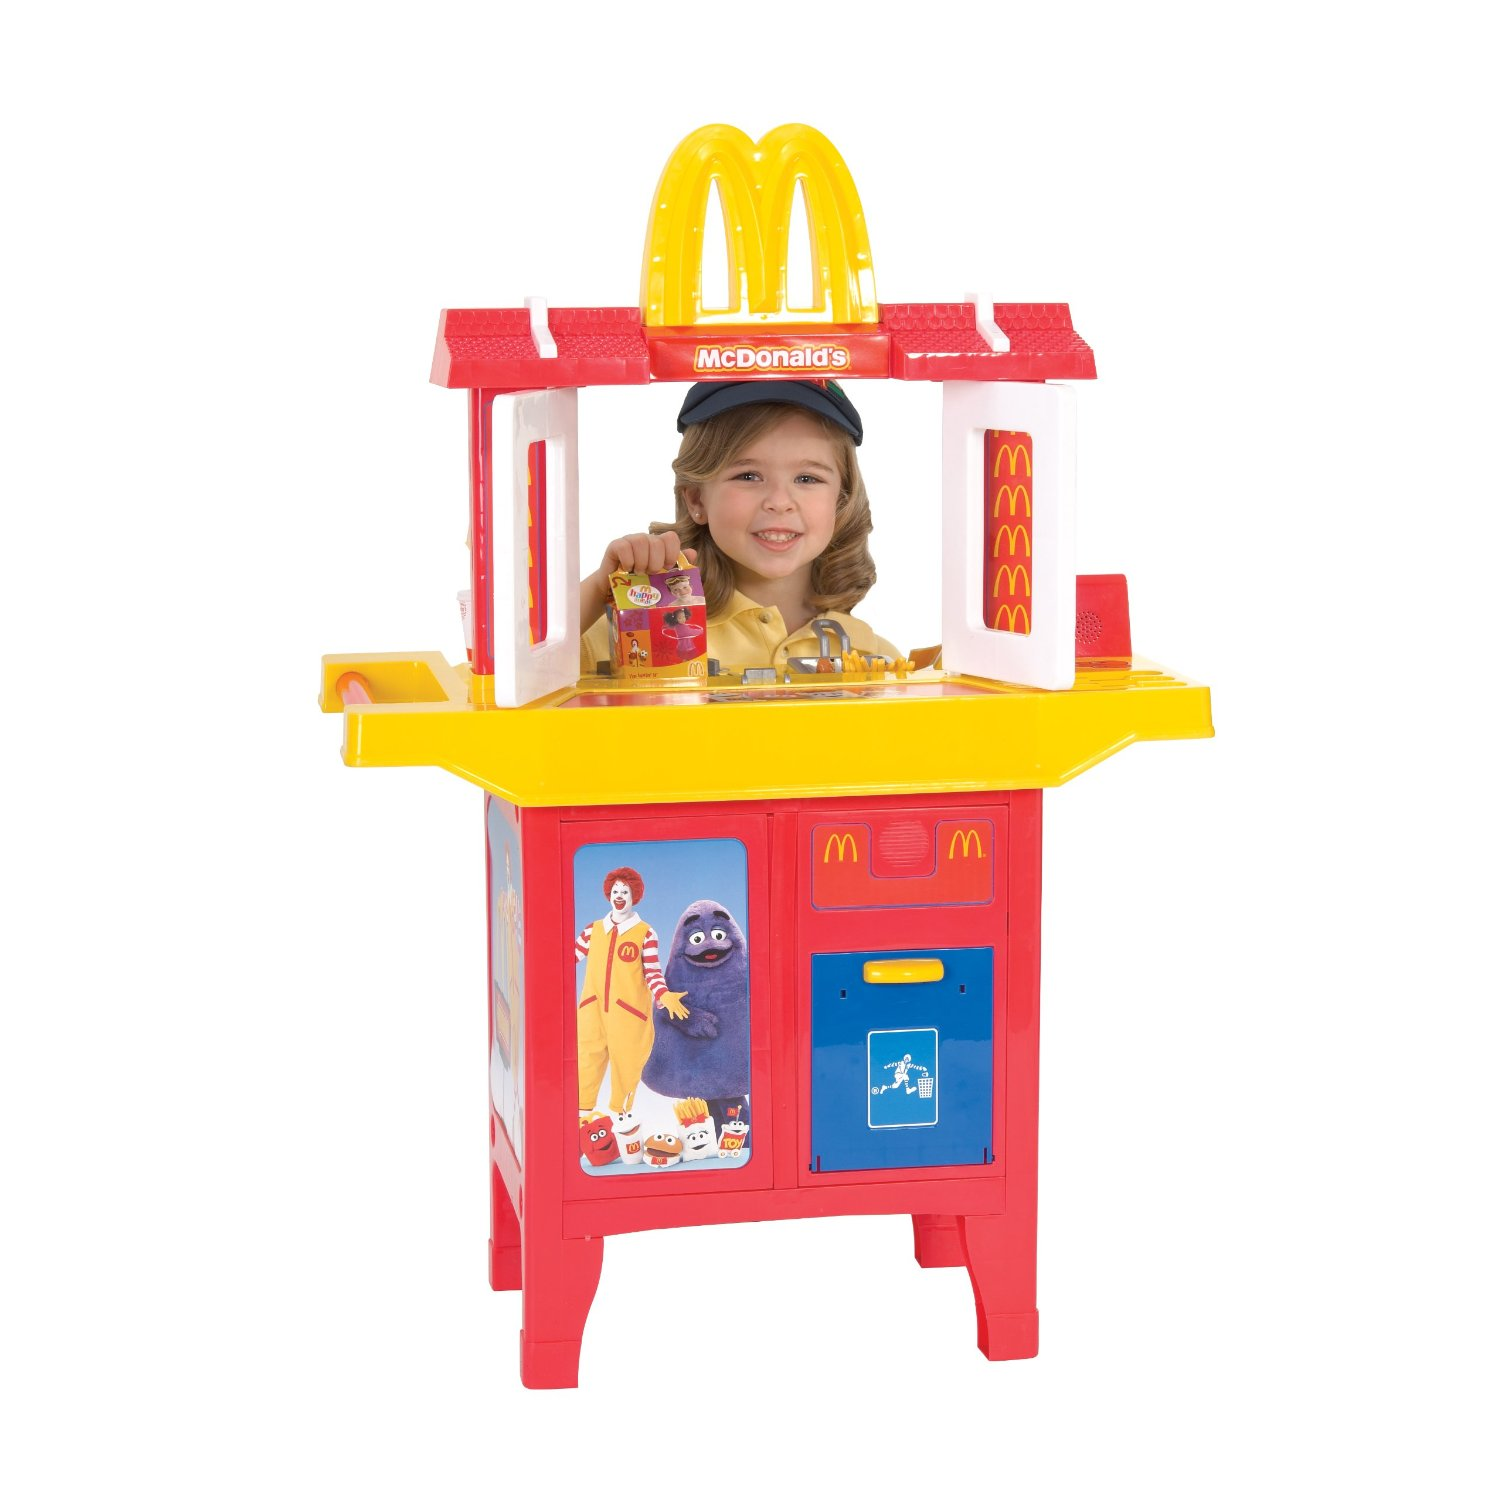 Come Buy Your McDonald's Play Set Today